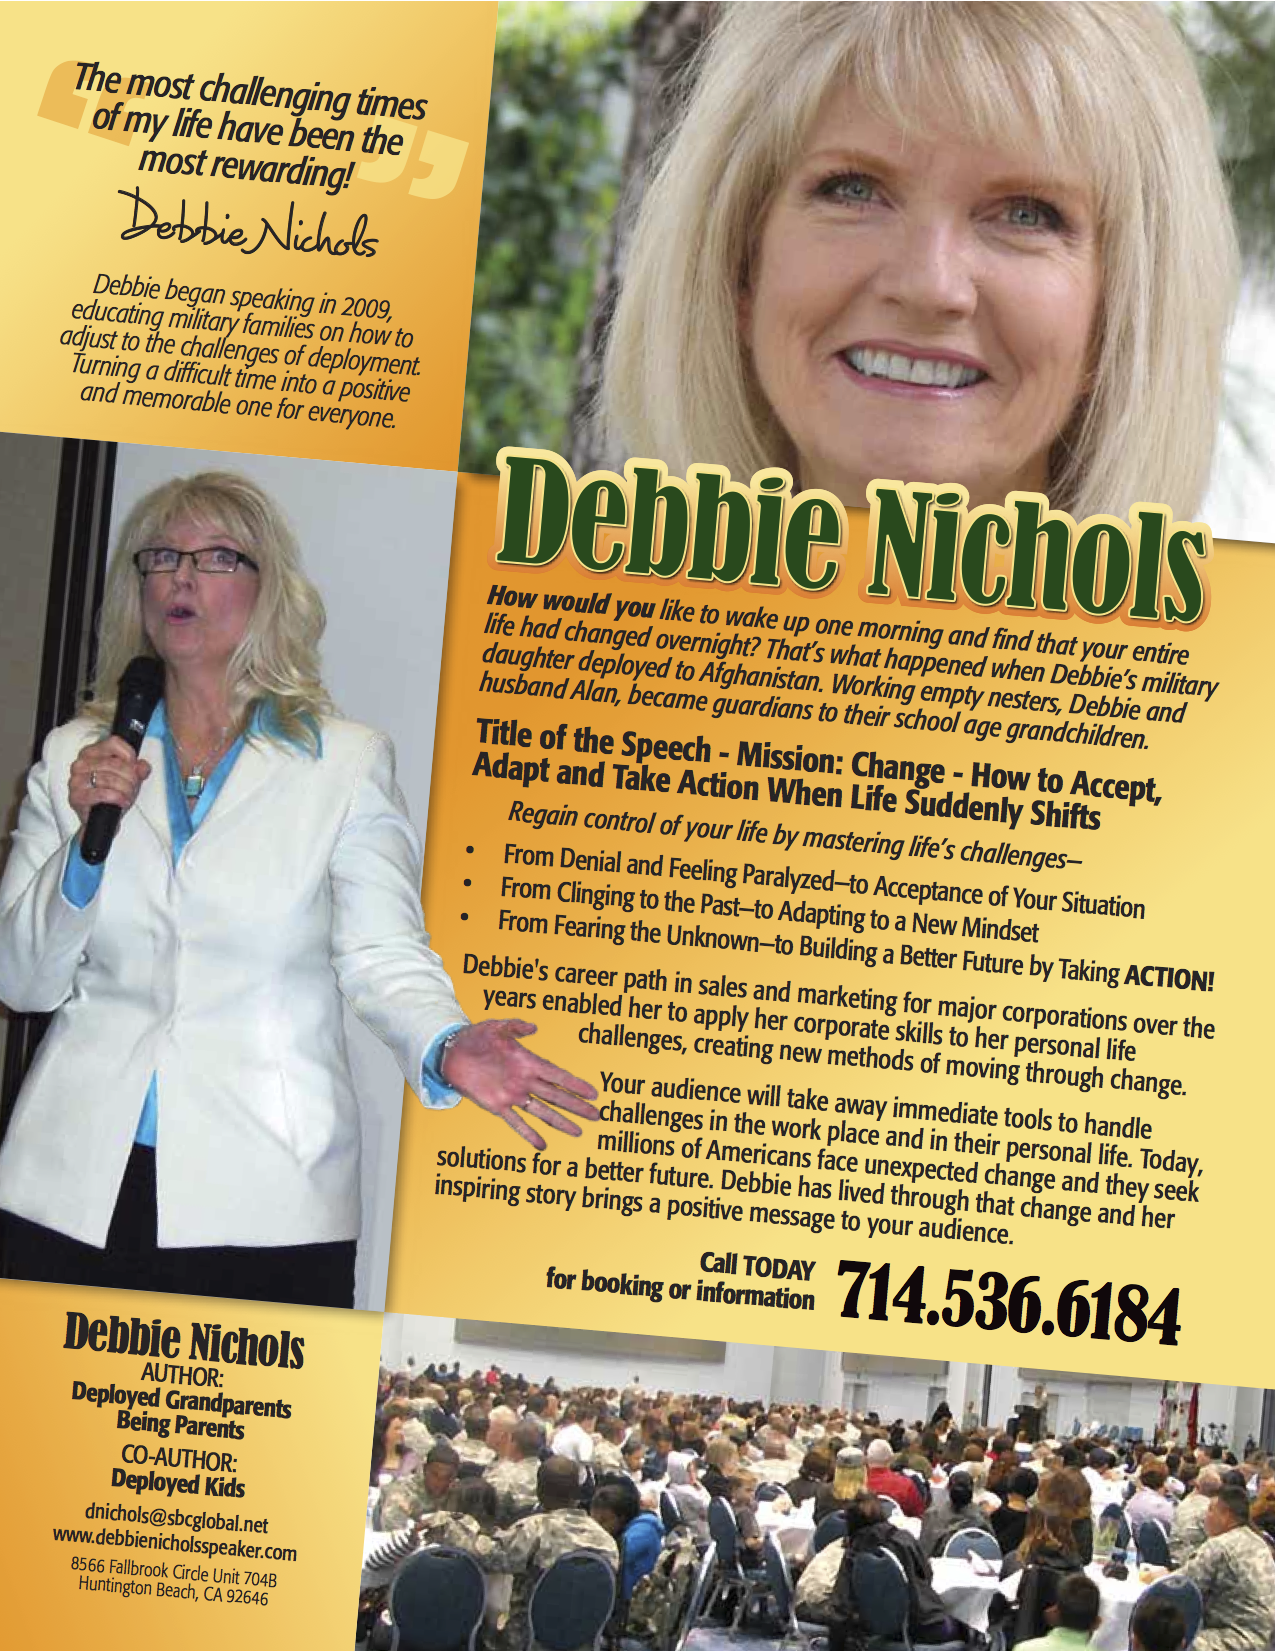 Onesheet options felicia slattery communication consultant and heres an example one sheet from one of felicias clients pronofoot35fo Images